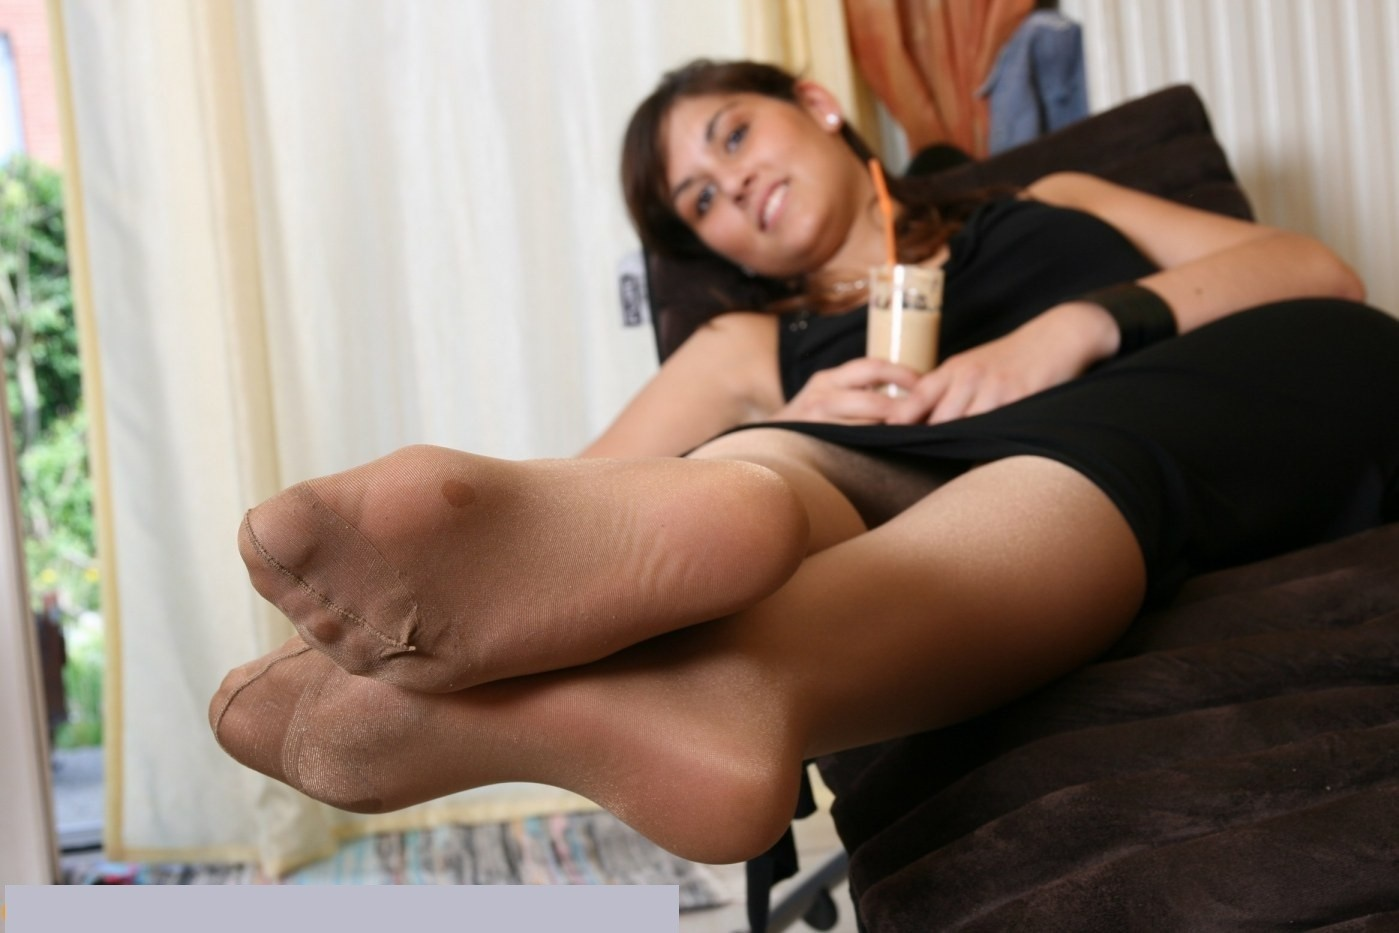 Mature feet in pantyhose, flickr asian girls pussy pics